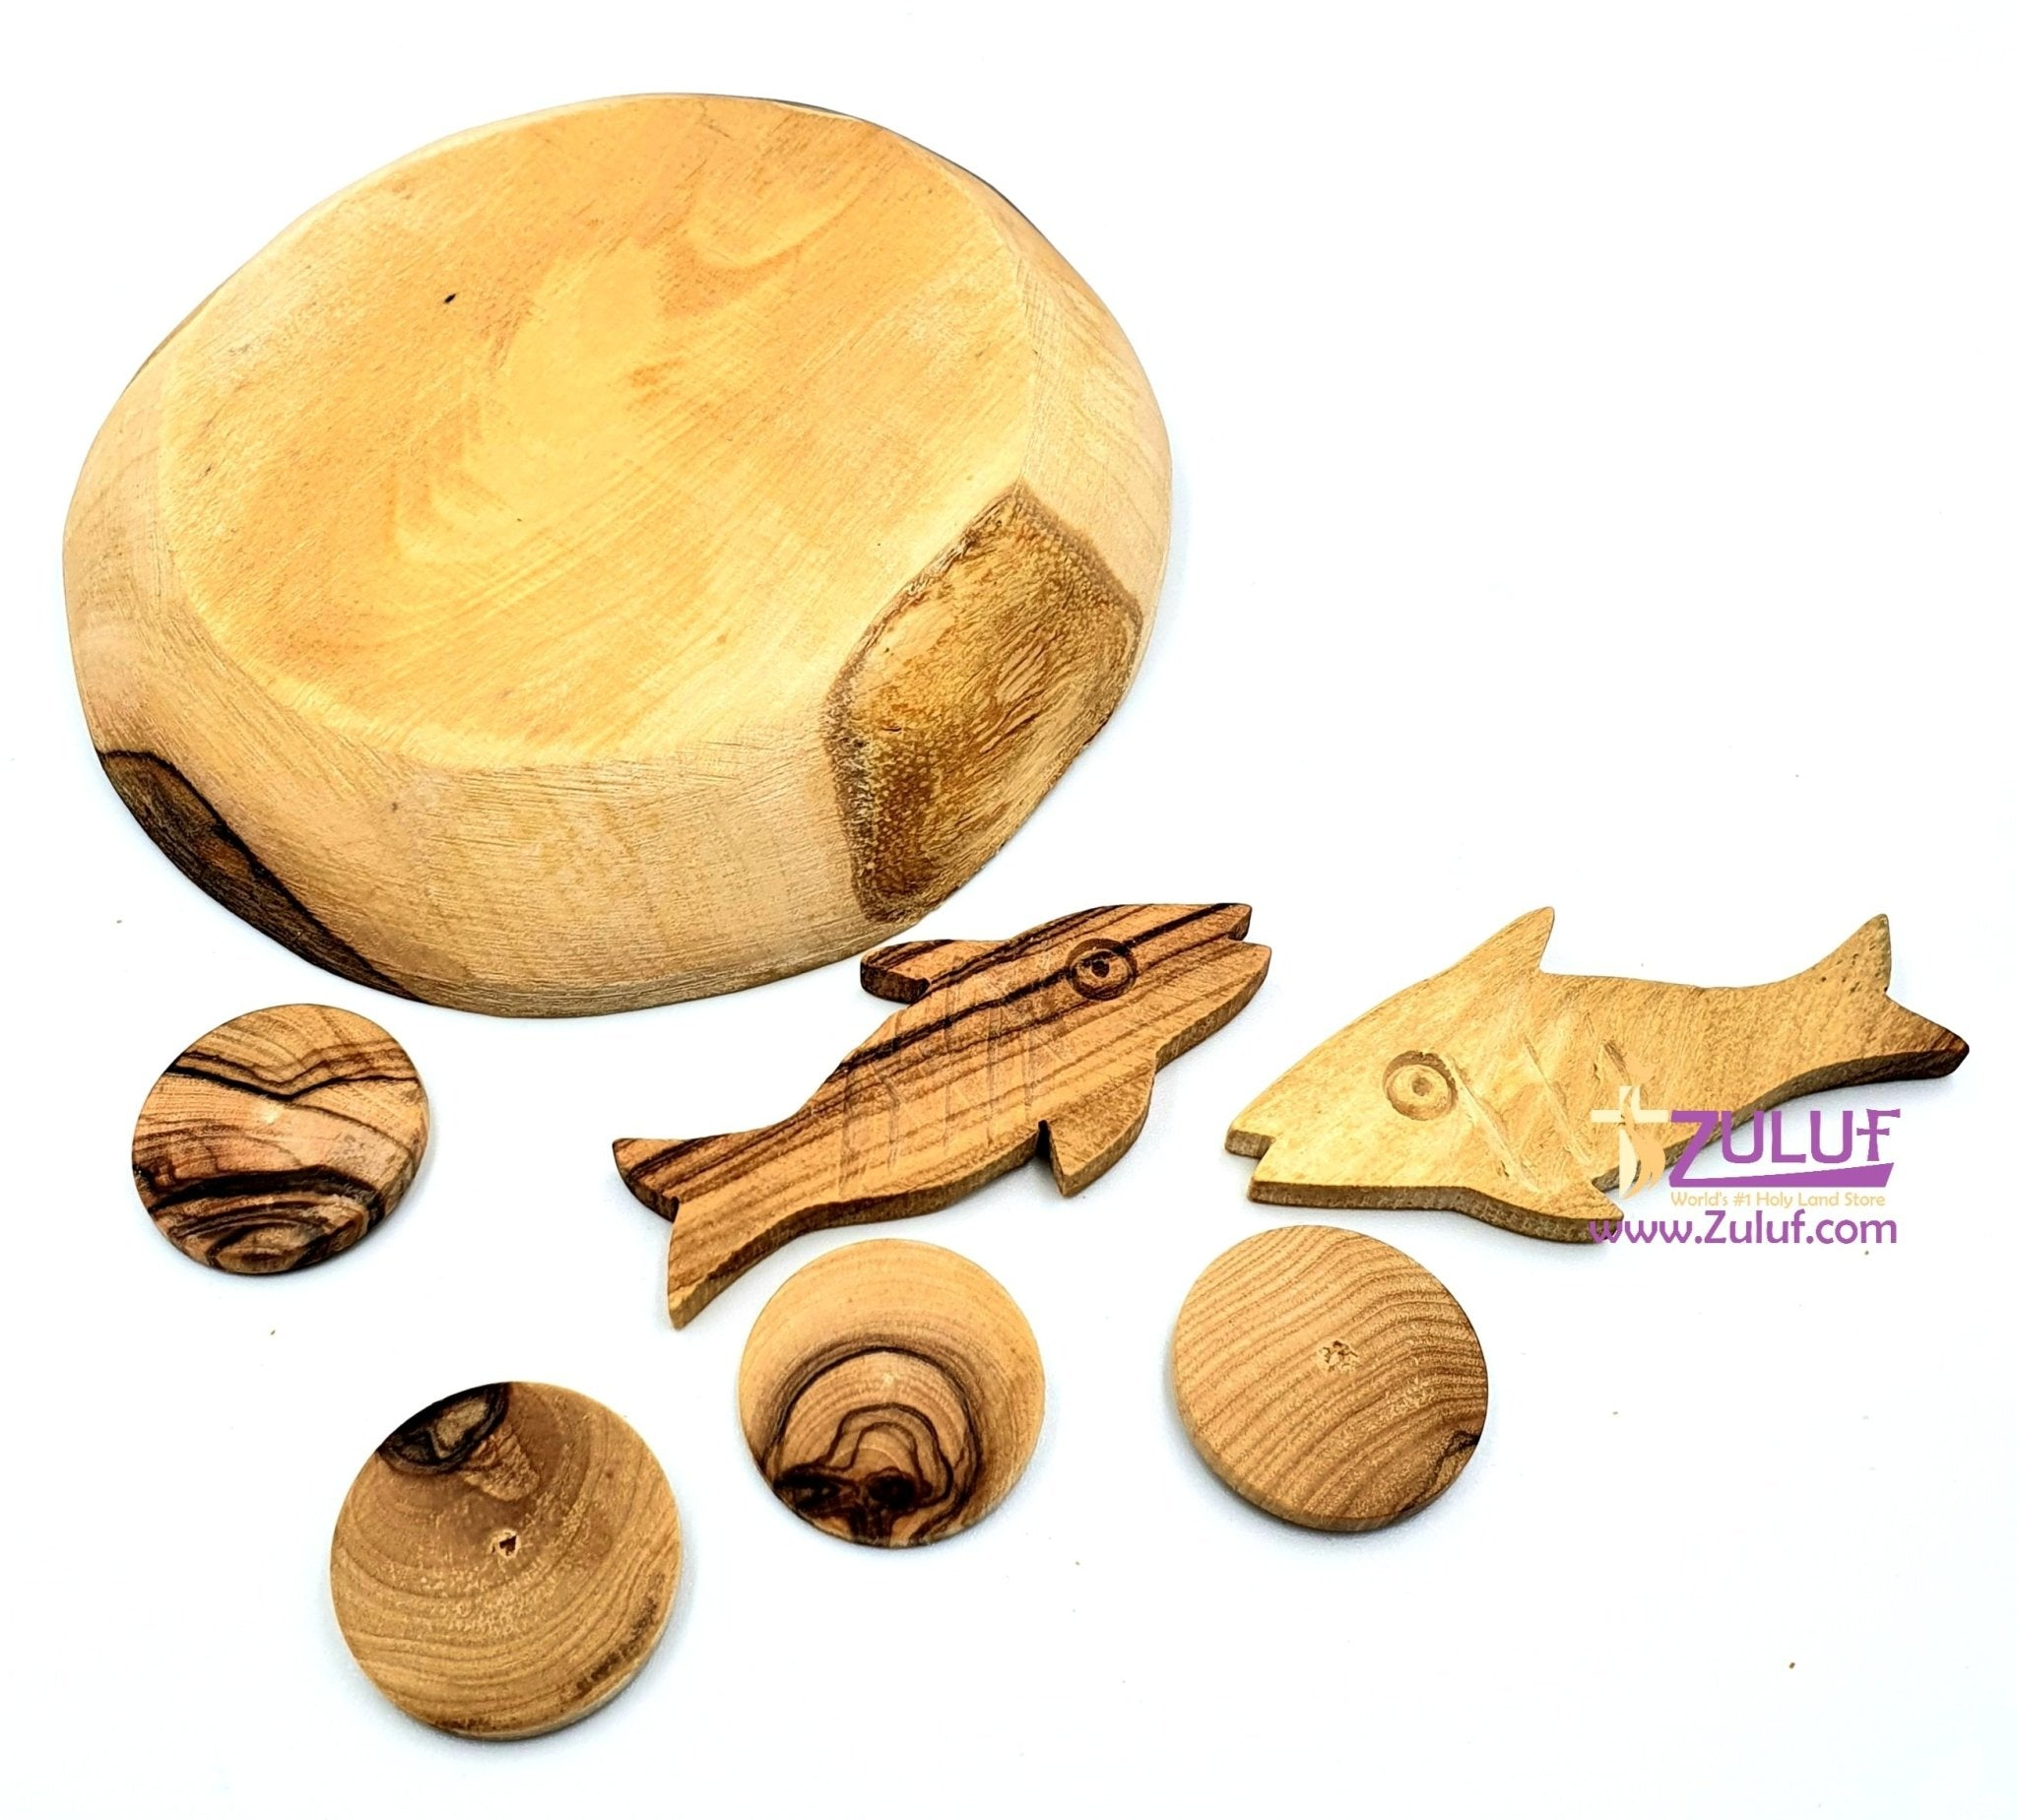 Olive wood plate with fish and bread HLG036 - Zuluf